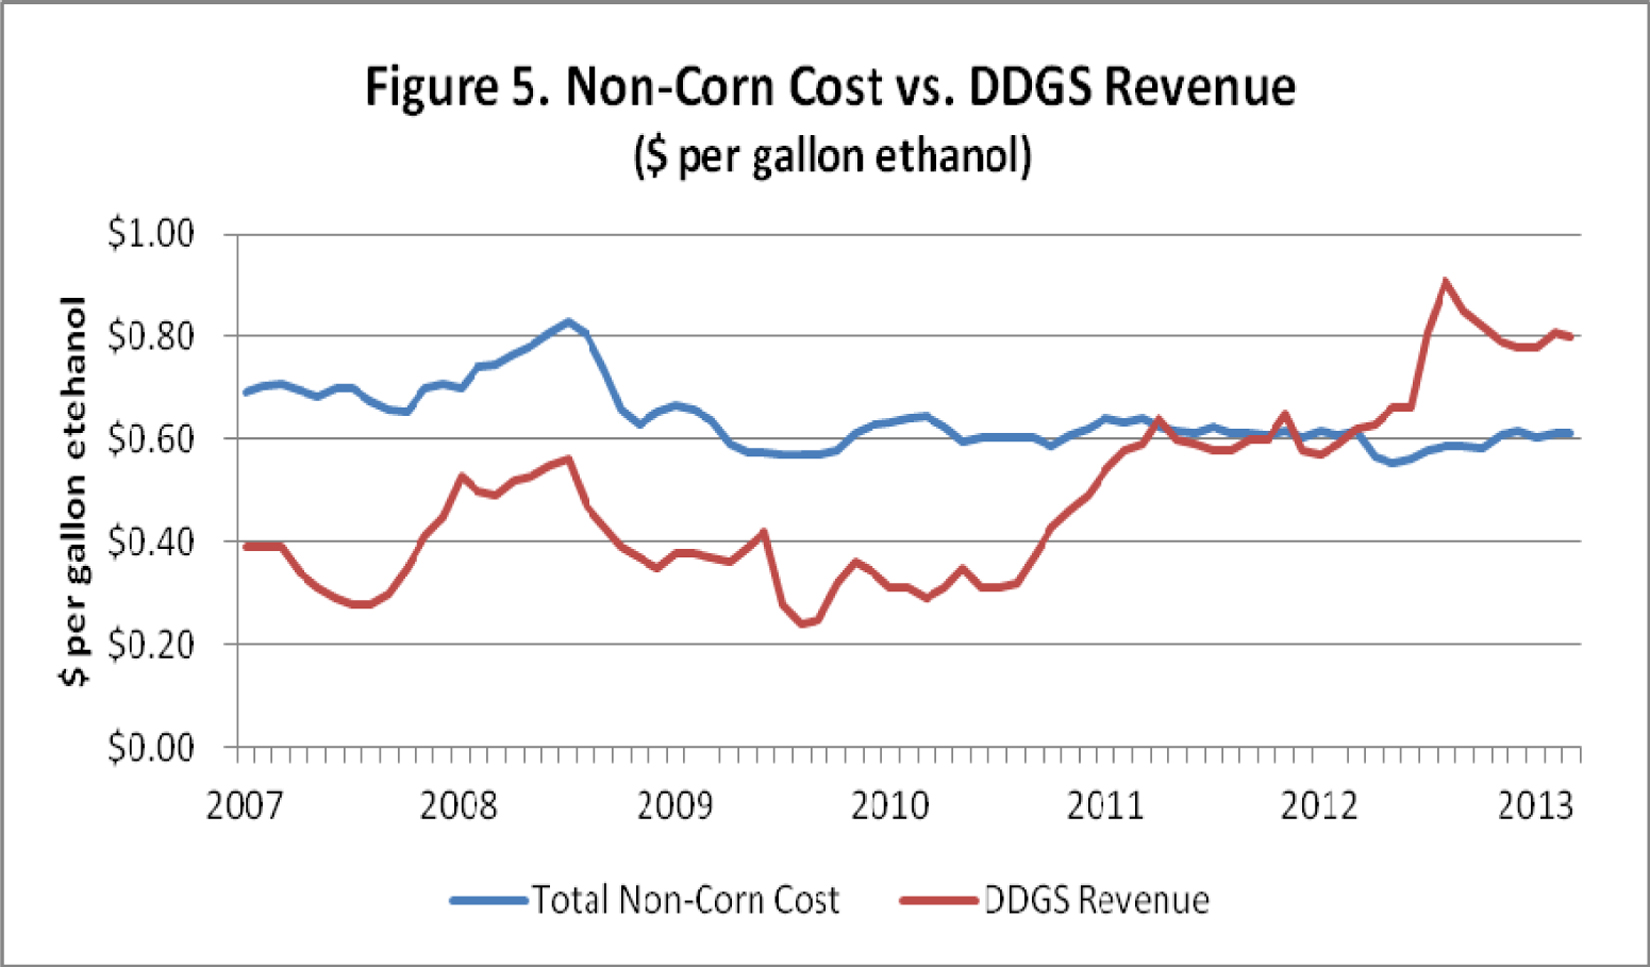 non corn costs vs ddgs revenue